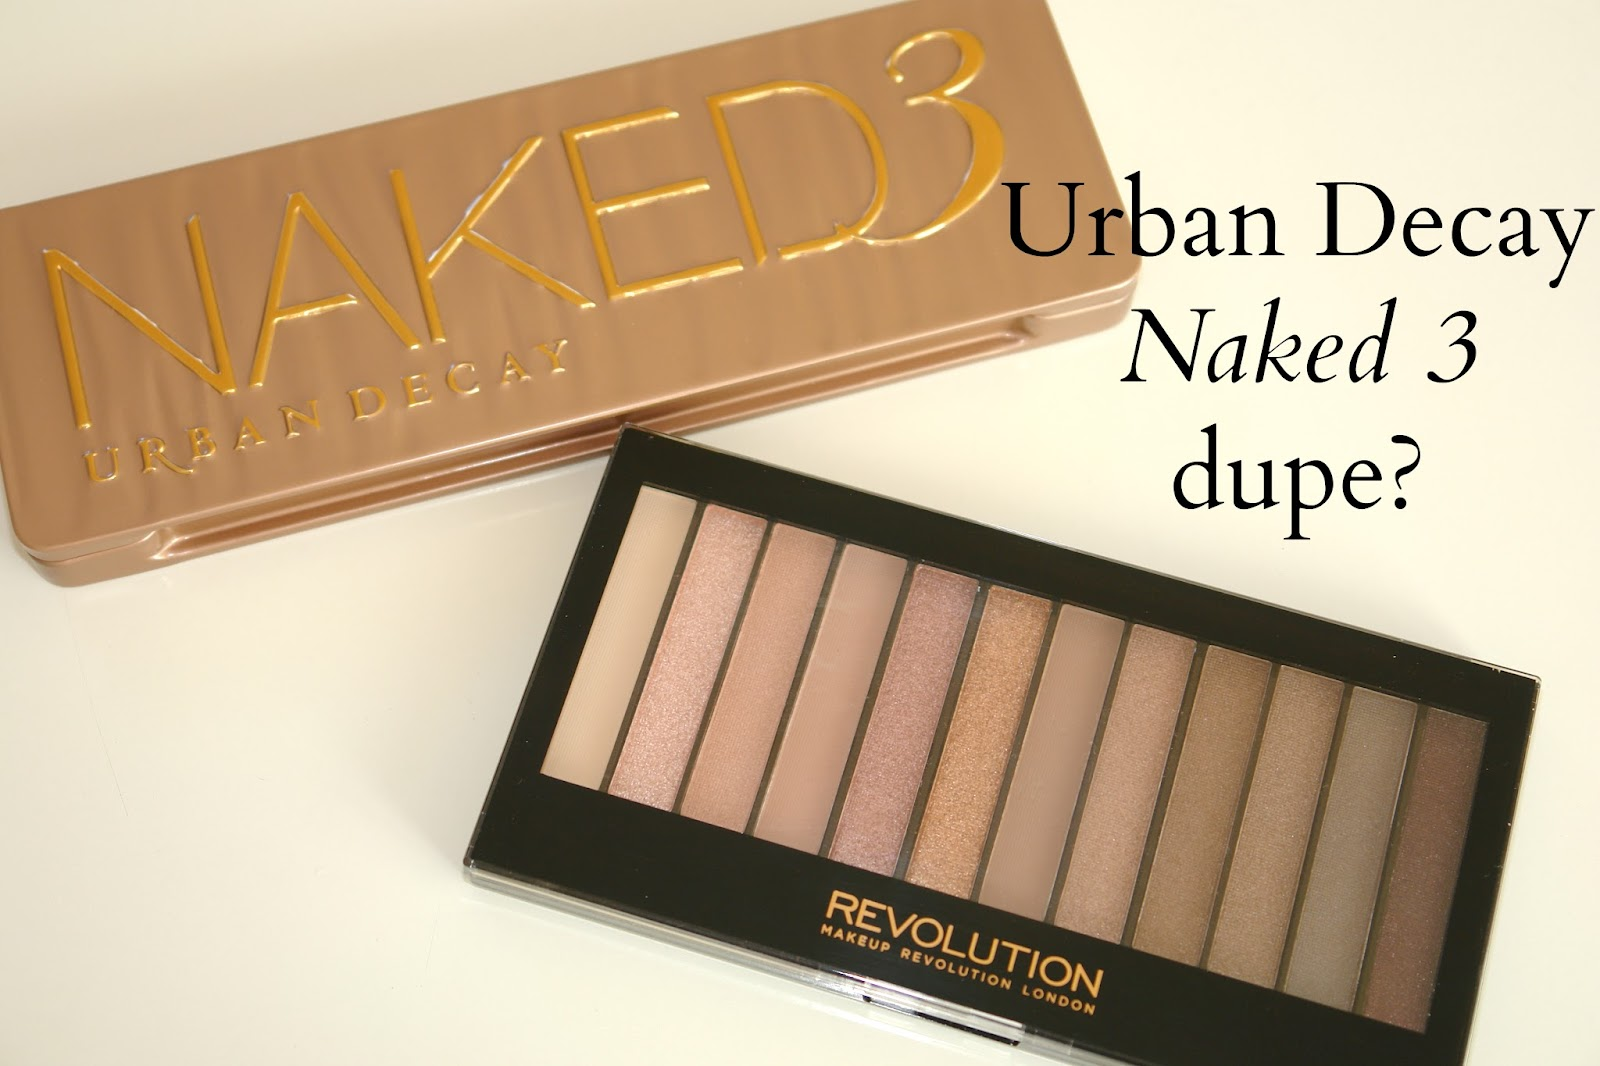 Urban Decay Naked 3 palette dupe for £4 from Make up Revolution, Redemption Palette Iconic 3, swatches, Make up Revolution, Urban Decay, eye shadows, palette, make up, review, Urban Decay Electric Palette, comparison, Naked 3,